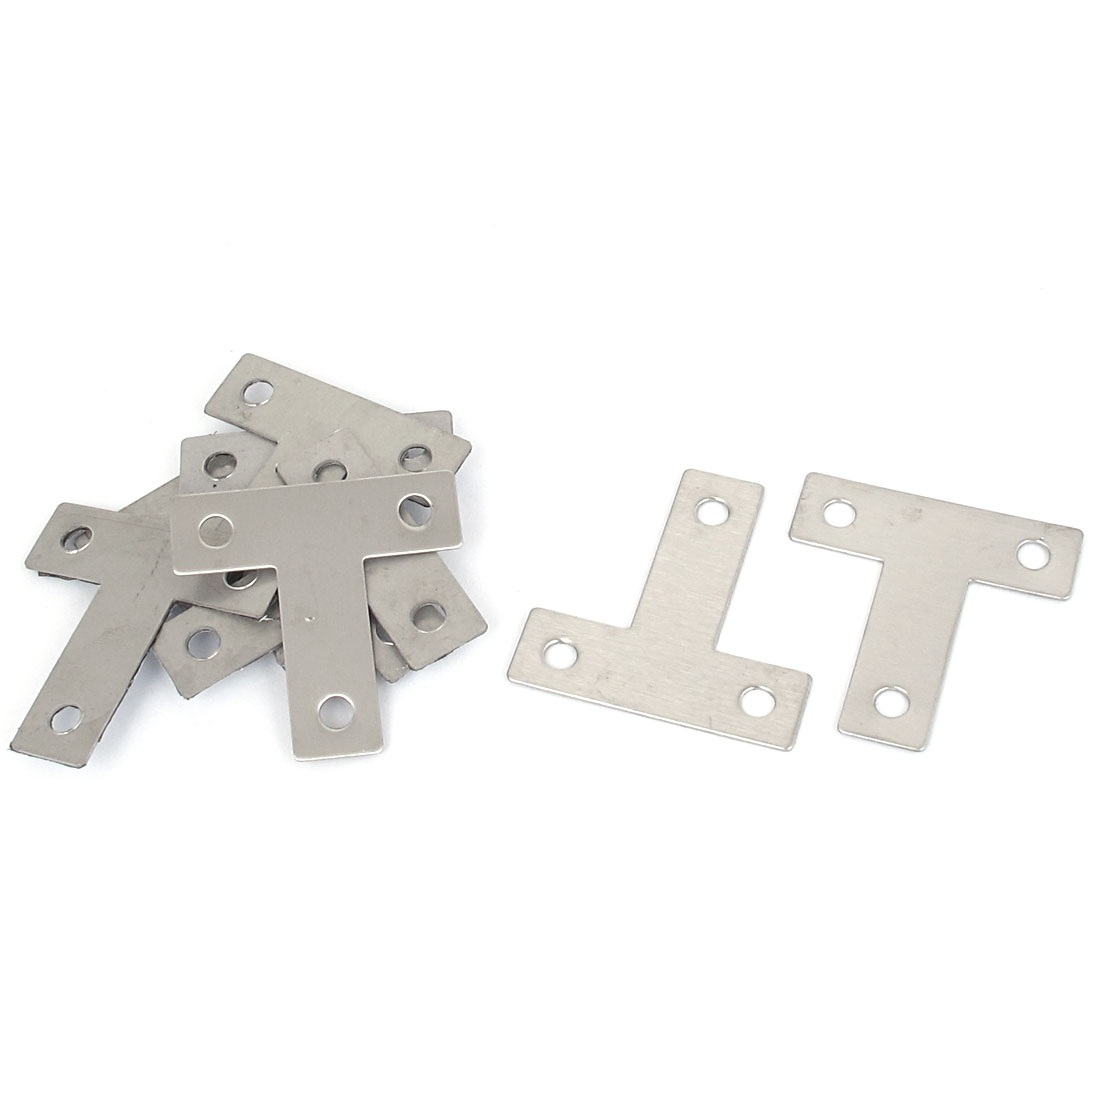 40mmx40mm Flat T Shape Angle Plate Corner Brace Repair Bracket 10PCS